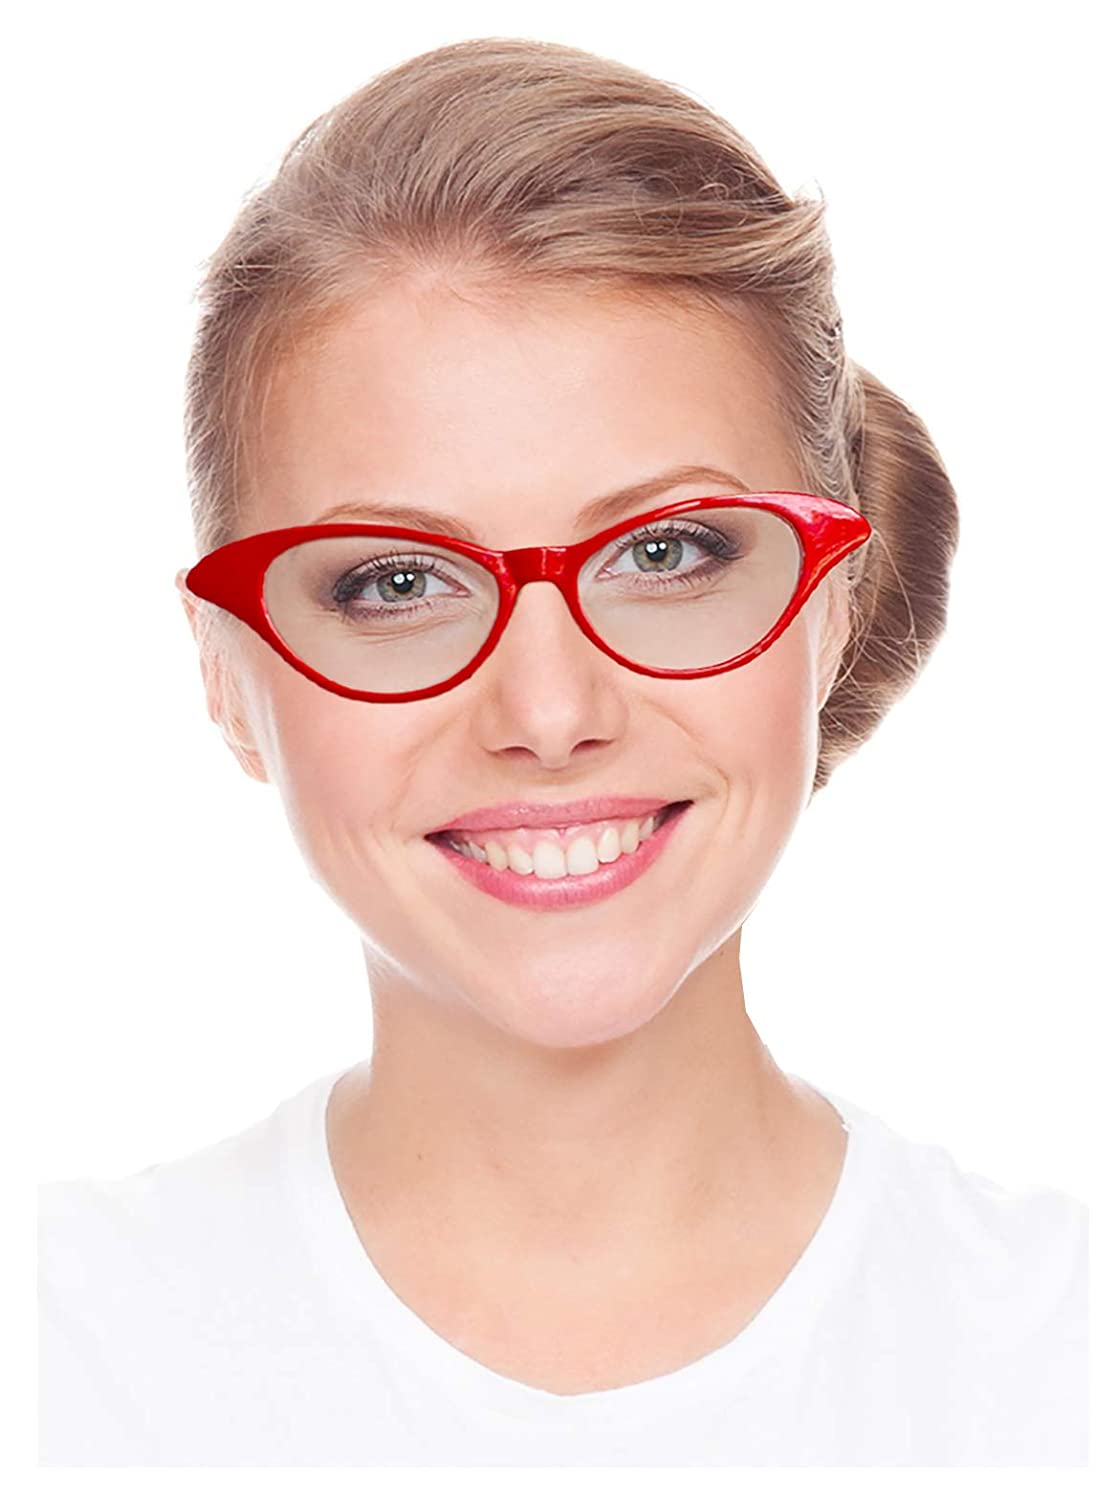 Costume Adventure 50s Retro Cat Eye Costume Glasses SOC-Red-Retro Glasses